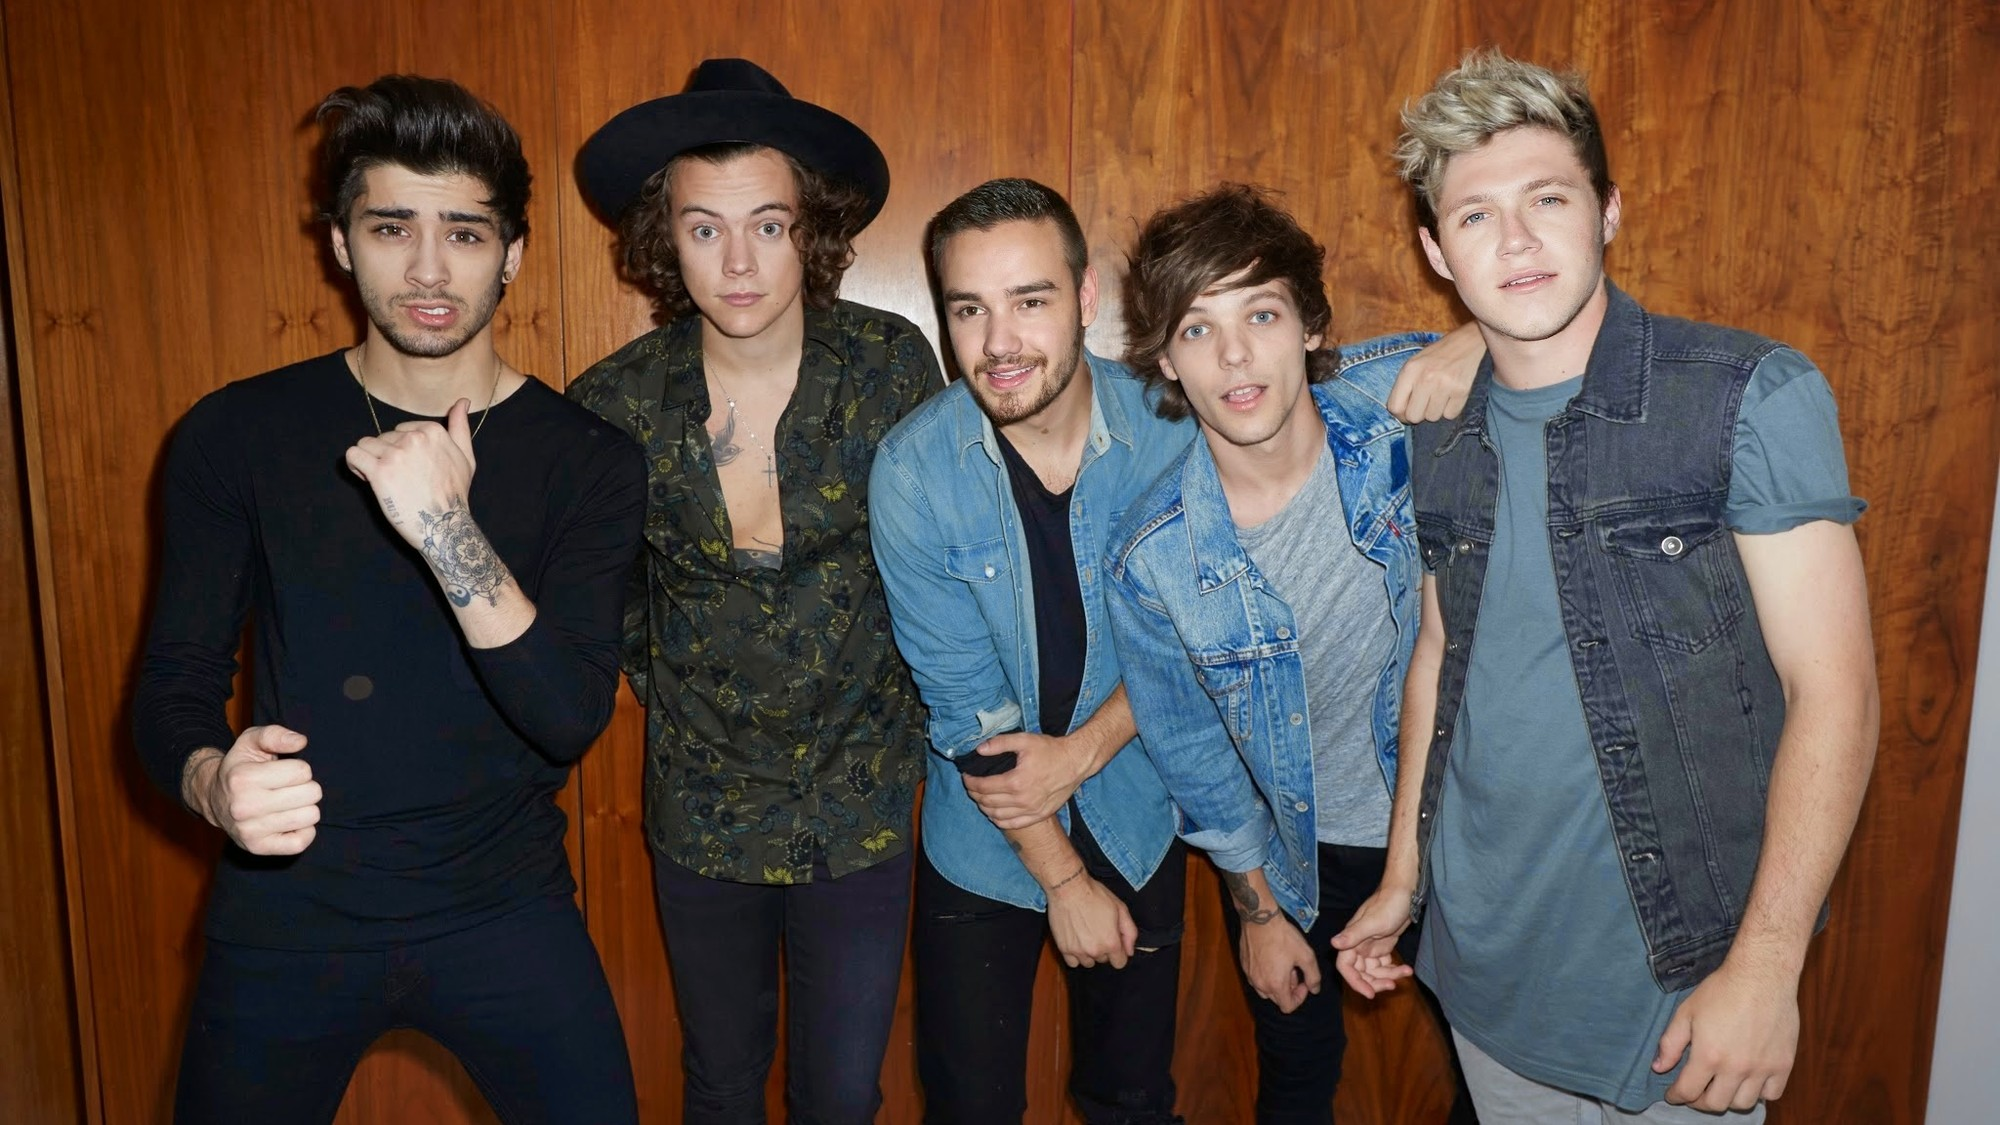 With 'Four,' Are the Boys of One Direction Growing Up? - VICE